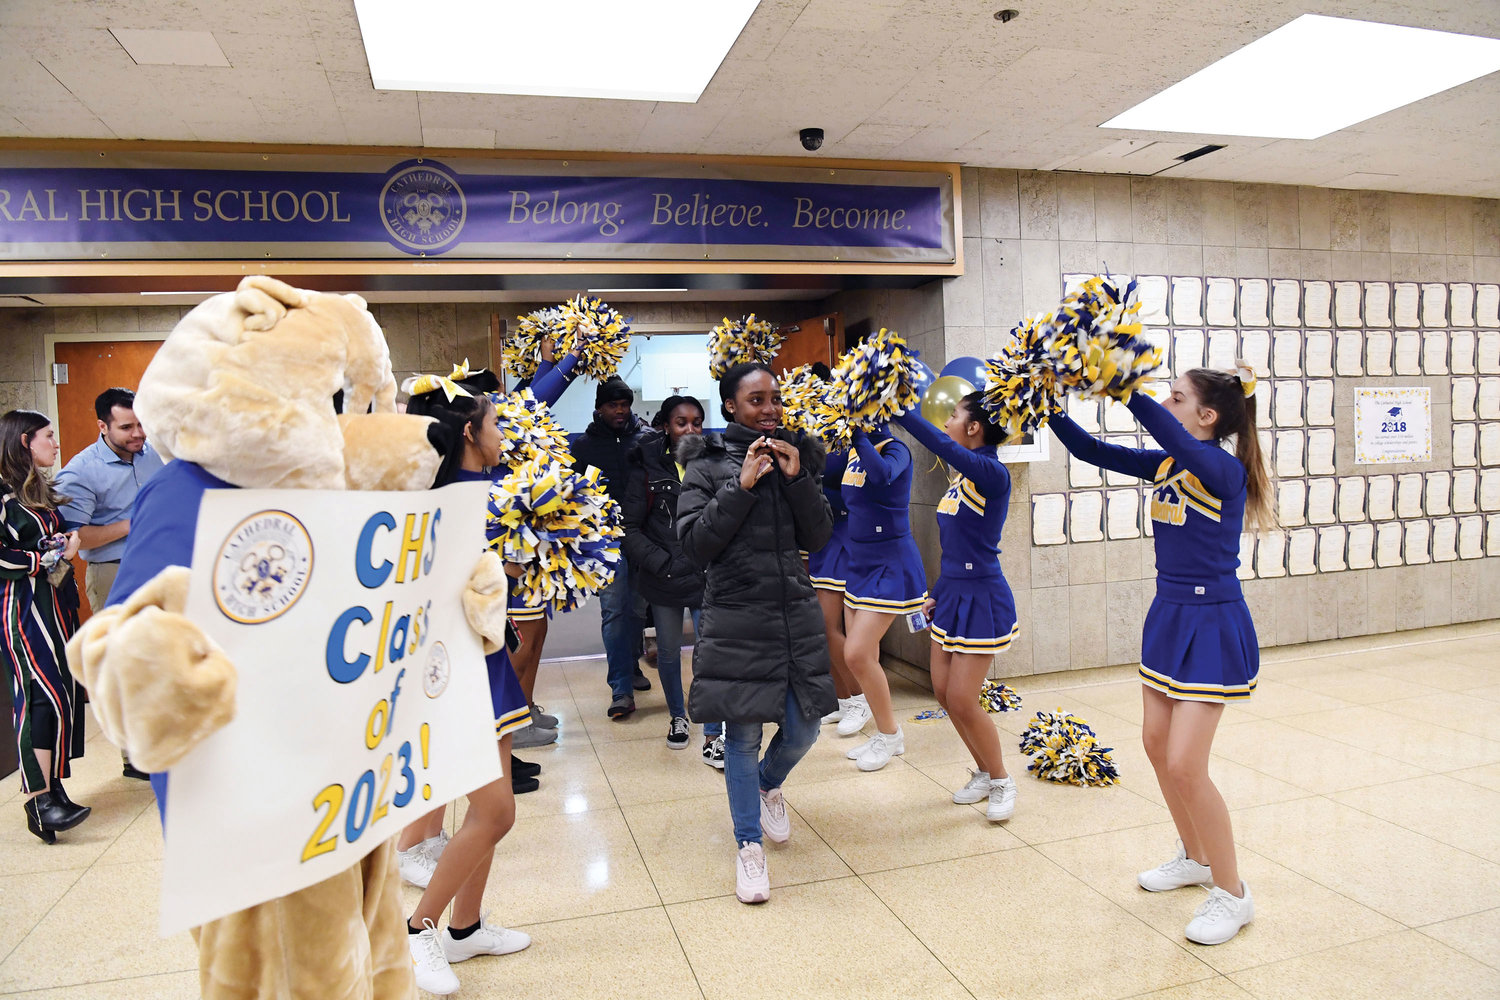 Ariana Arias leaves registration through the cheerleader line during High School Registration Day for Catholic high schools in the archdiocese at Cathedral High School in Manhattan March 7. Visiting eighth-graders were registering for the 2019-2020 academic year at Cathedral and received T-shirts and gifts from current students greeting them.